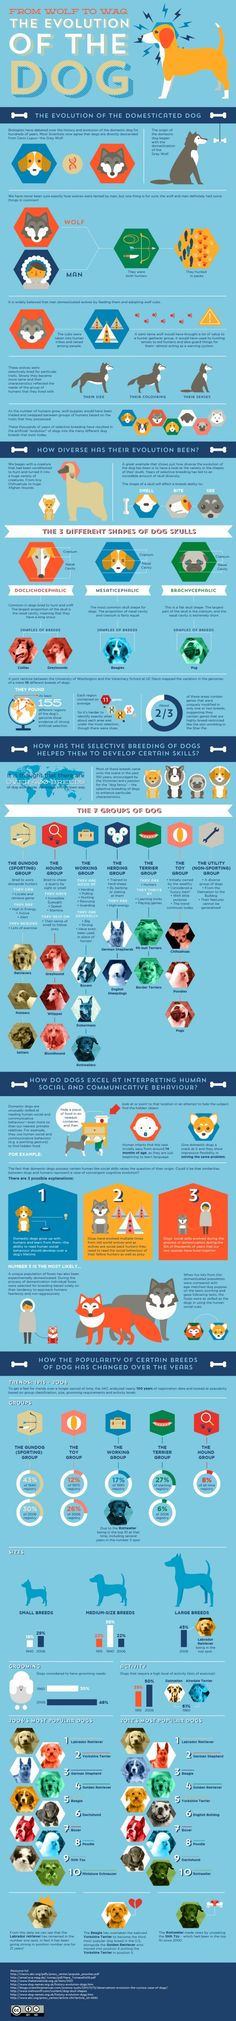 The Evolution of the Dog #dogs #evolution